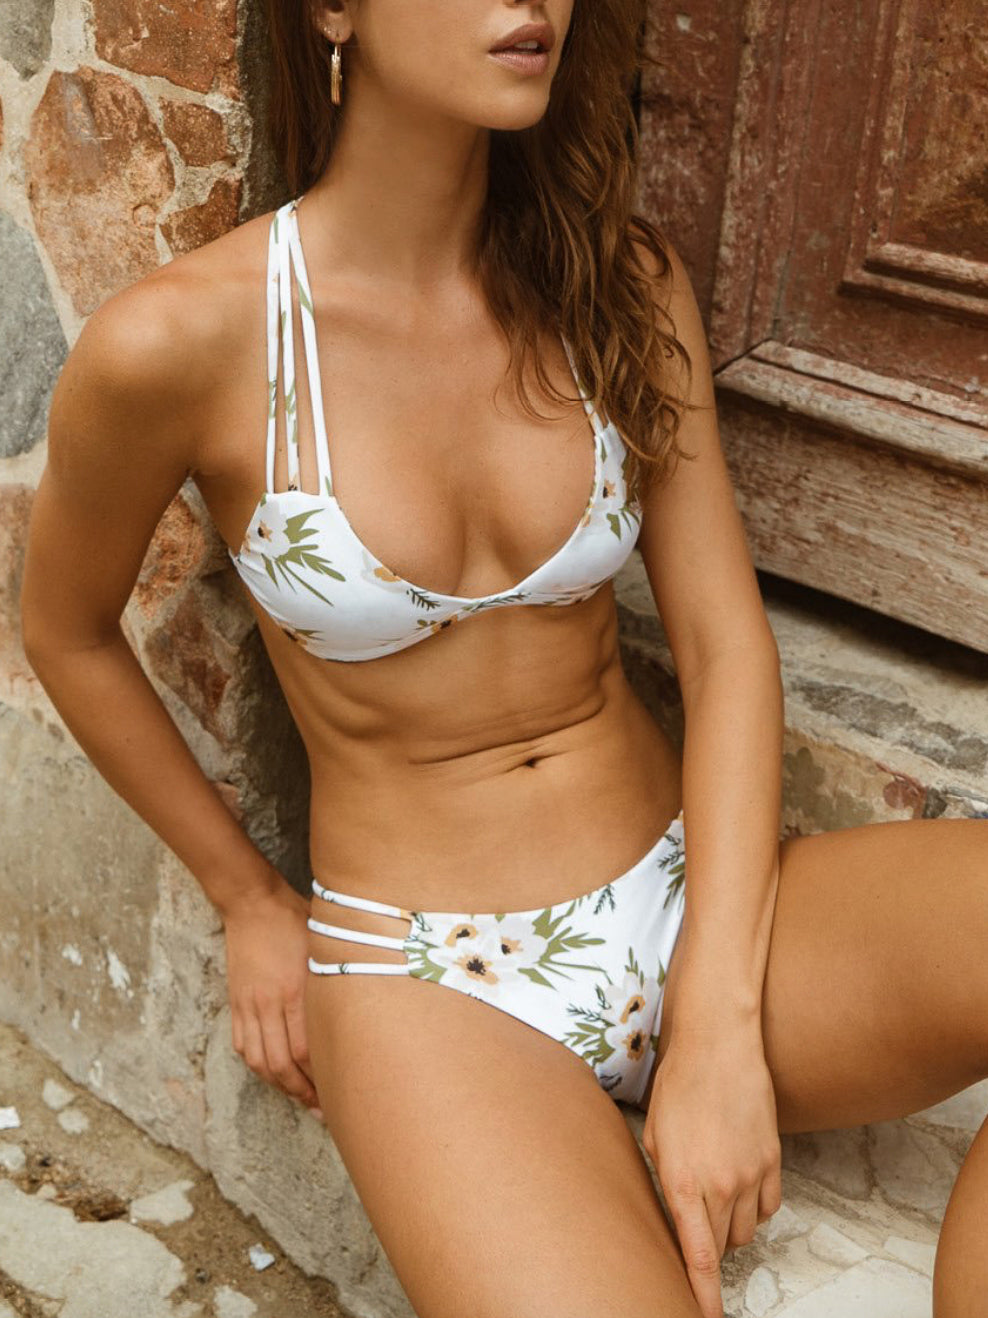 This bikini top is white with a flower print. This top has cross-stitching detail on the back and ties at the neck.